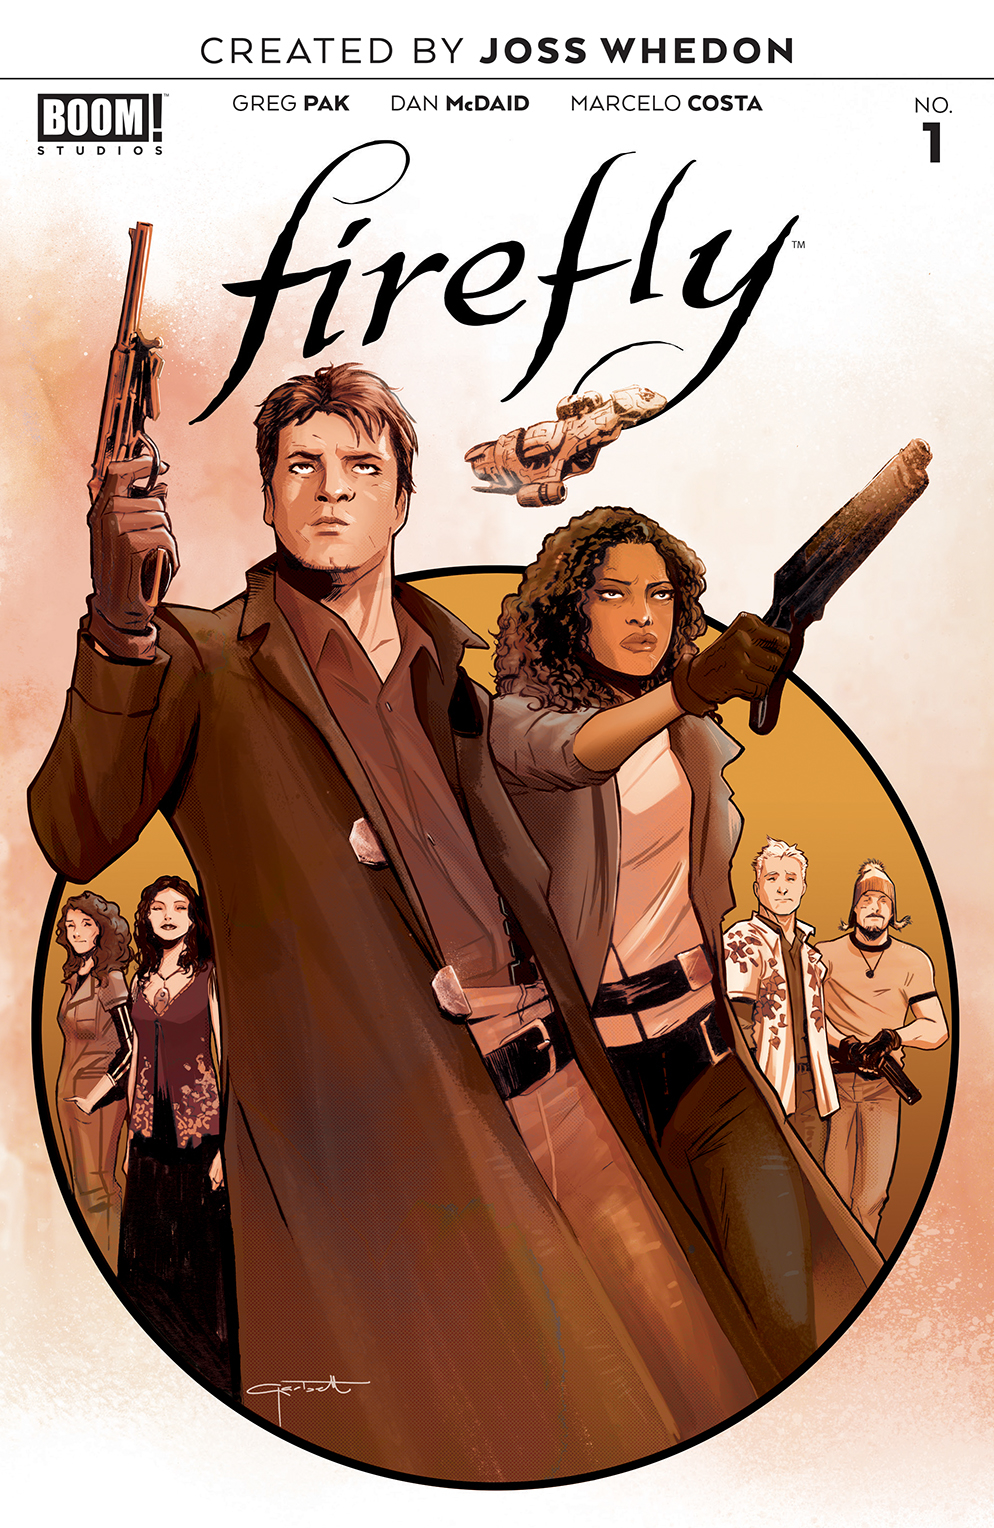 A solid start to what could be a wonderful continuation of the Firefly franchise.